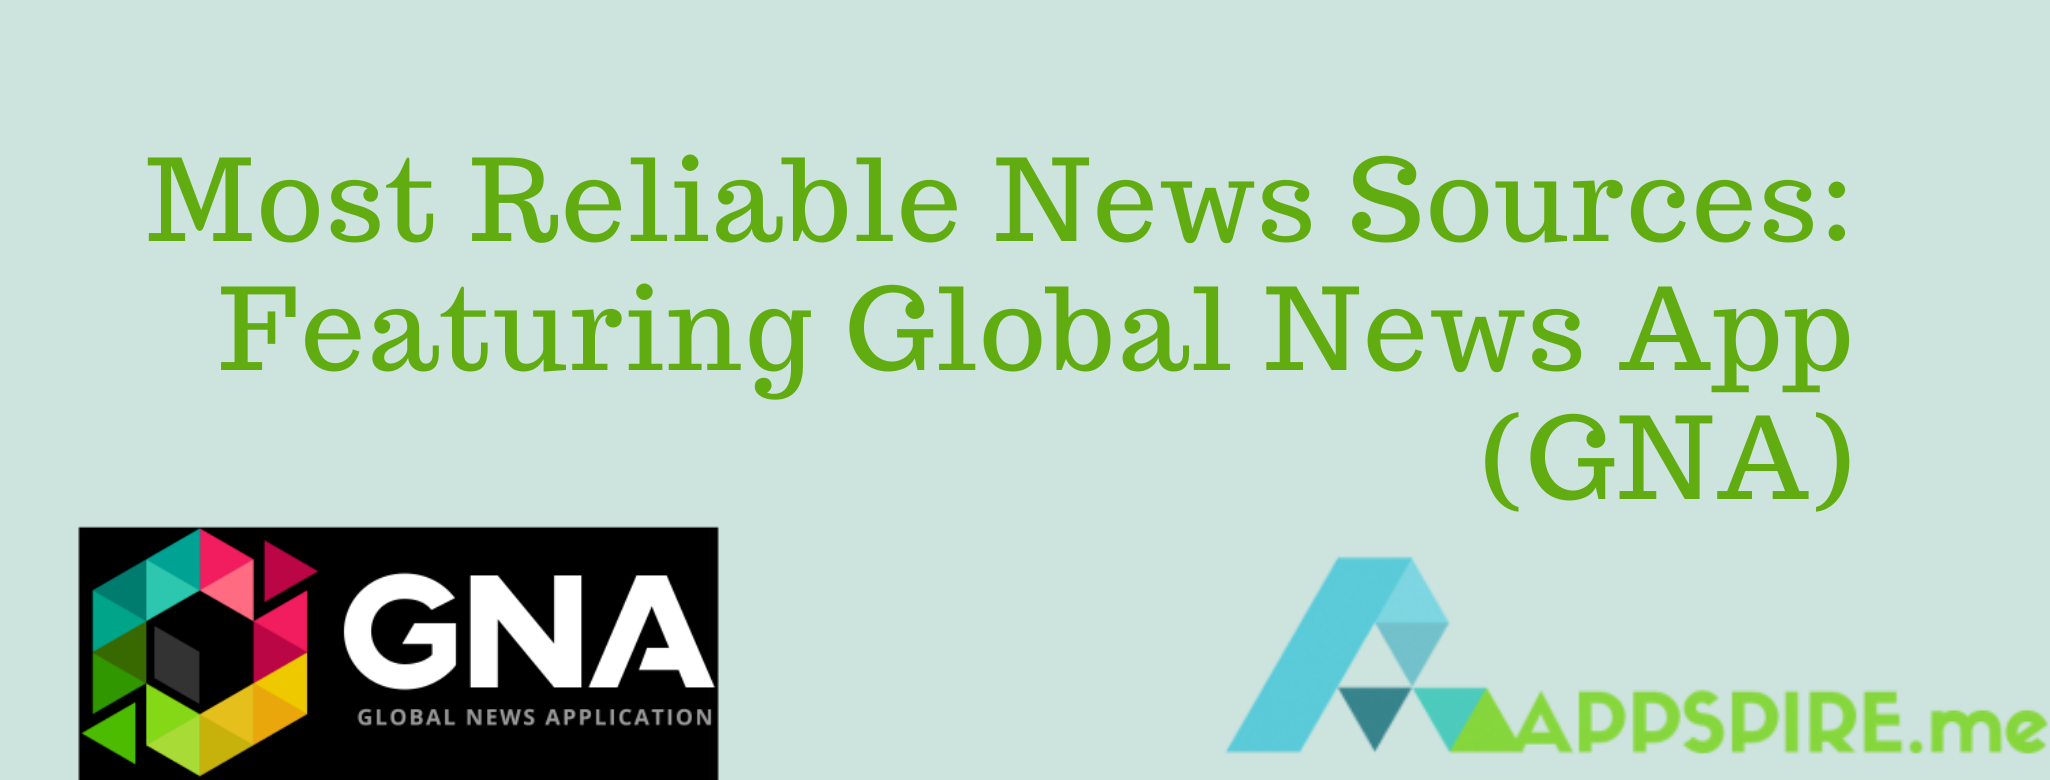 Reliable News Sources: Featuring Global News App (GNA)